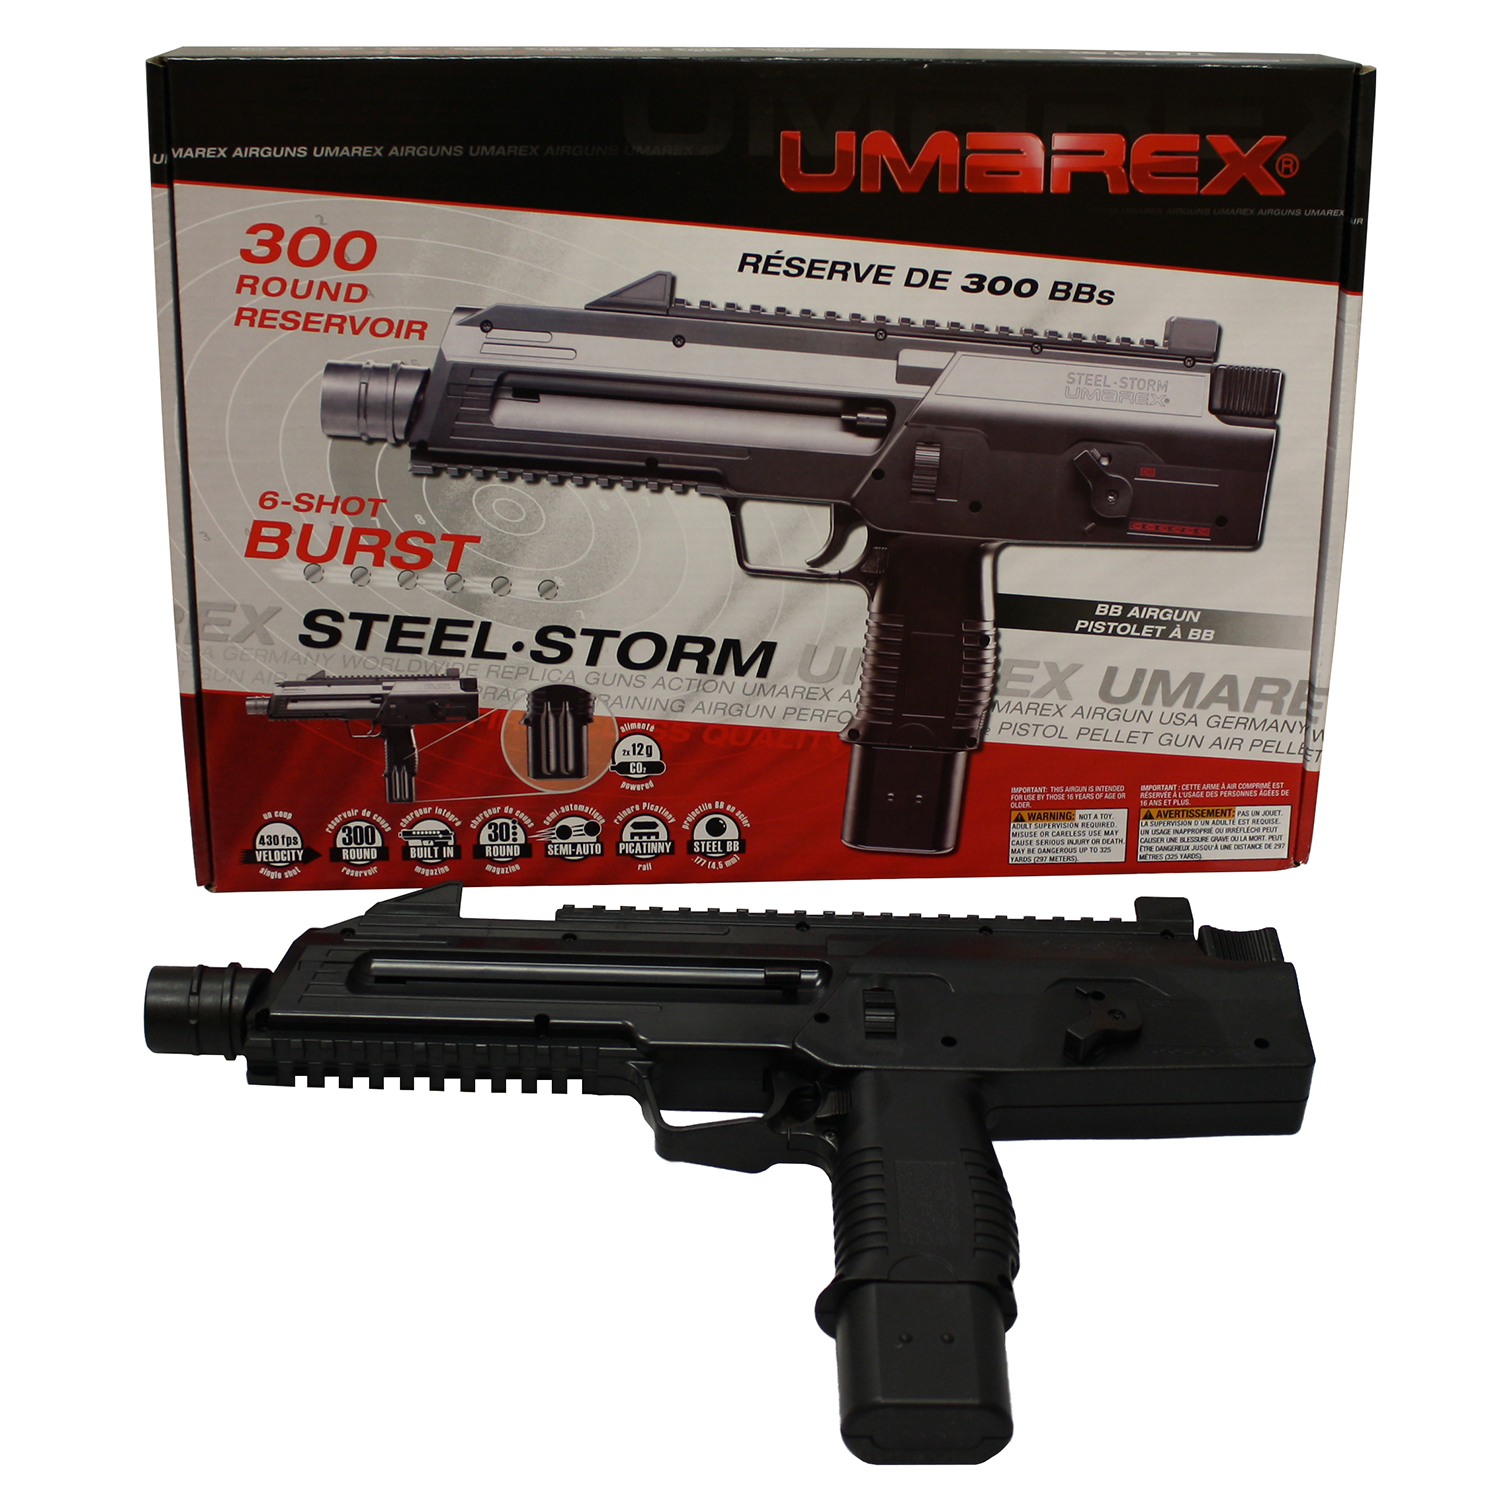 storm of steel The umarex steel storm air gun is a popular choice due to its realistic look and feel find this and other high quality bb guns at pyramydaircom today.